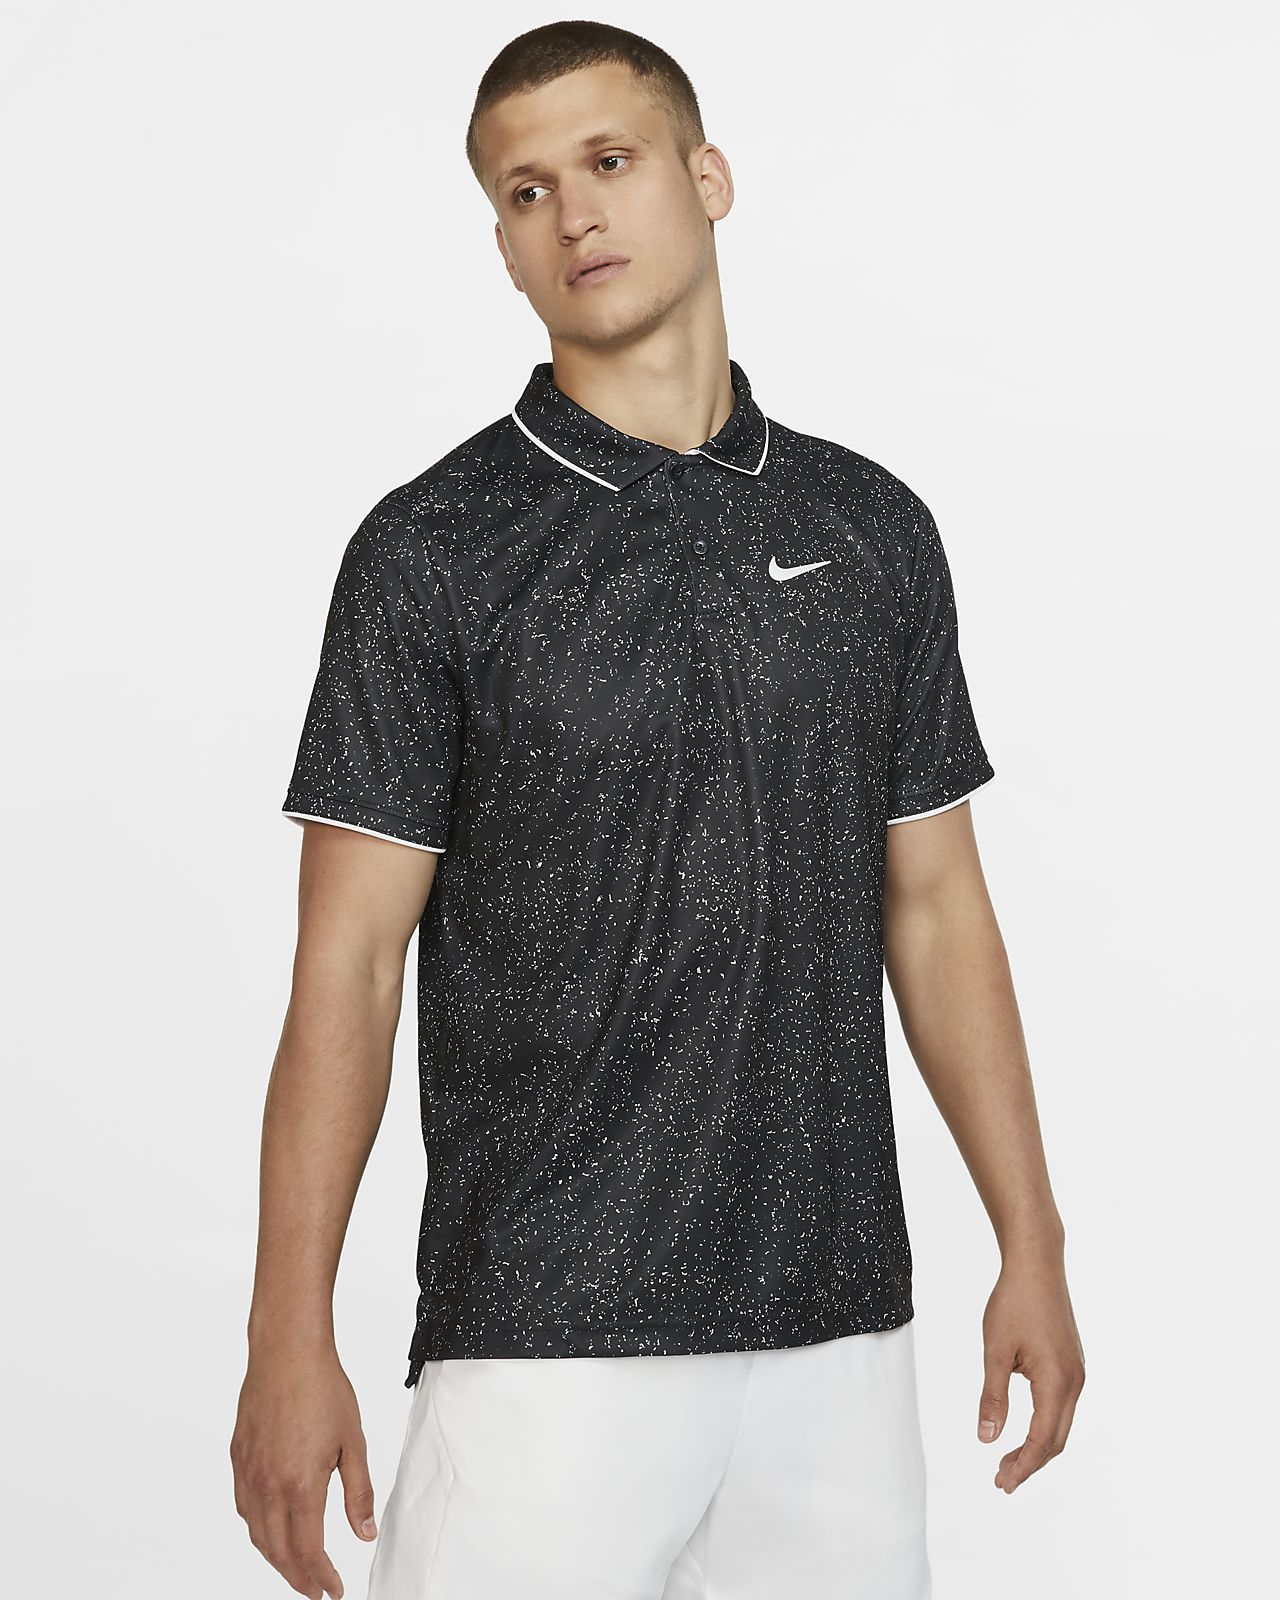 NikeCourt Dri-FIT Men's Printed Tennis Polo